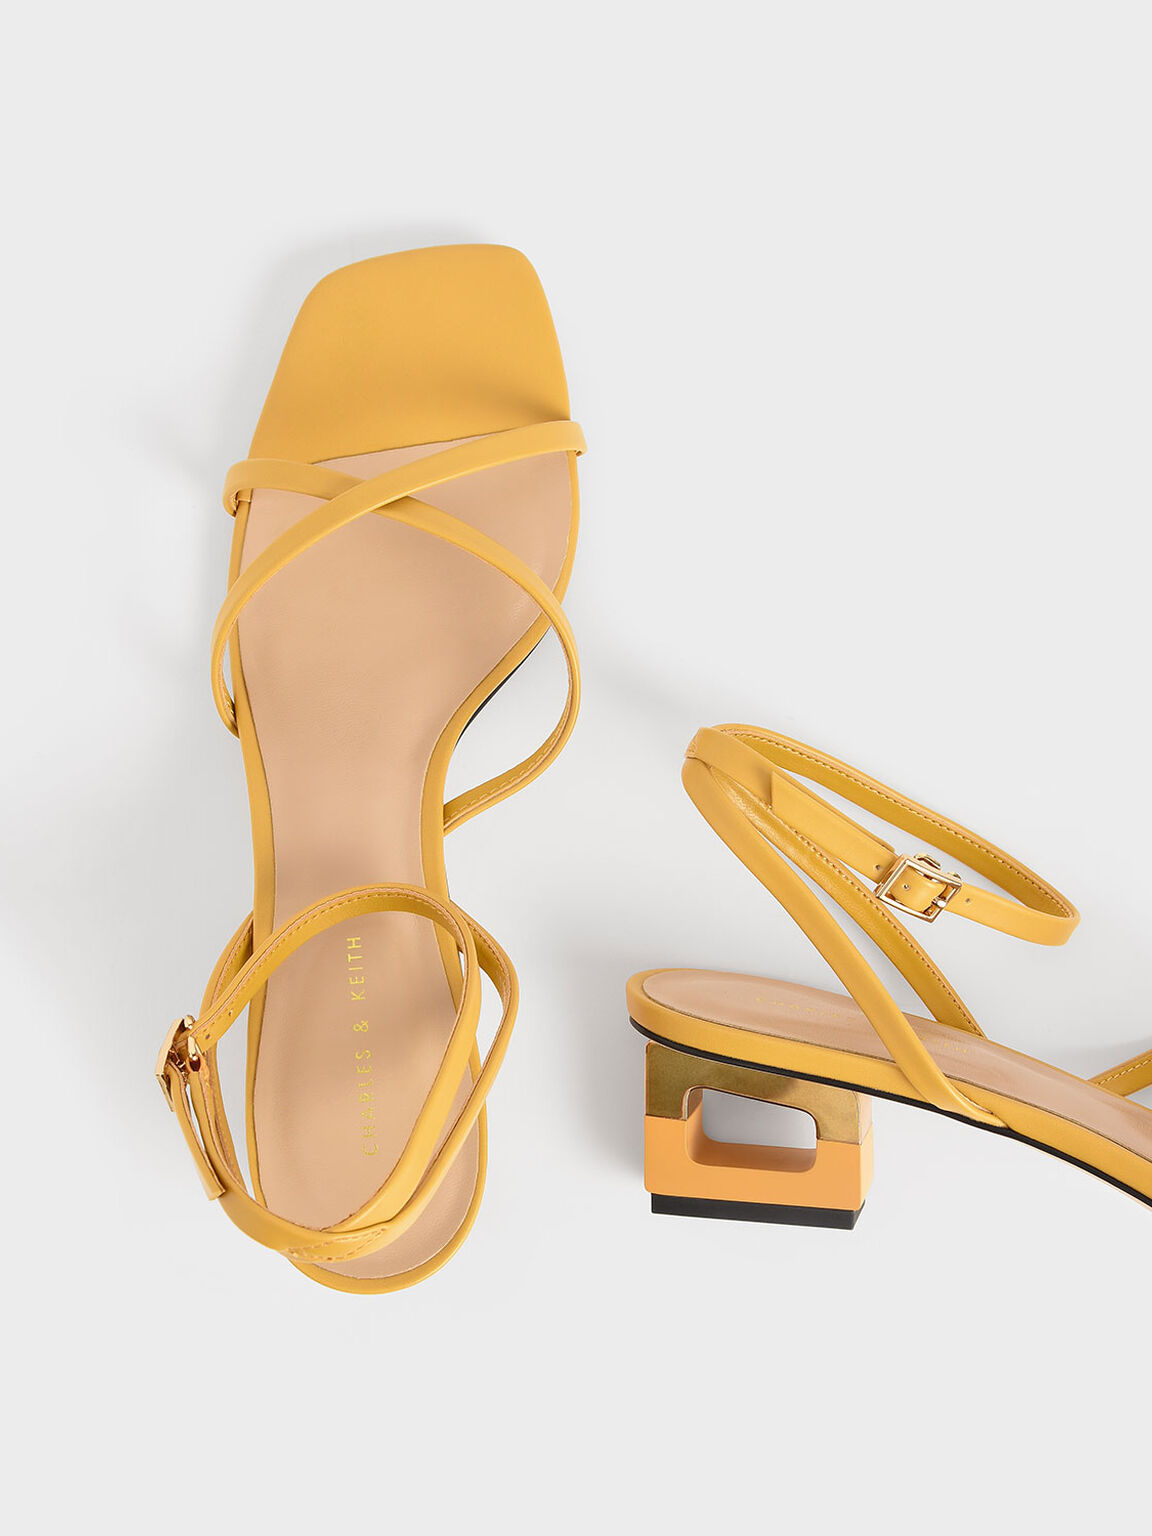 Sculptural Chrome Heel Sandals, Yellow, hi-res